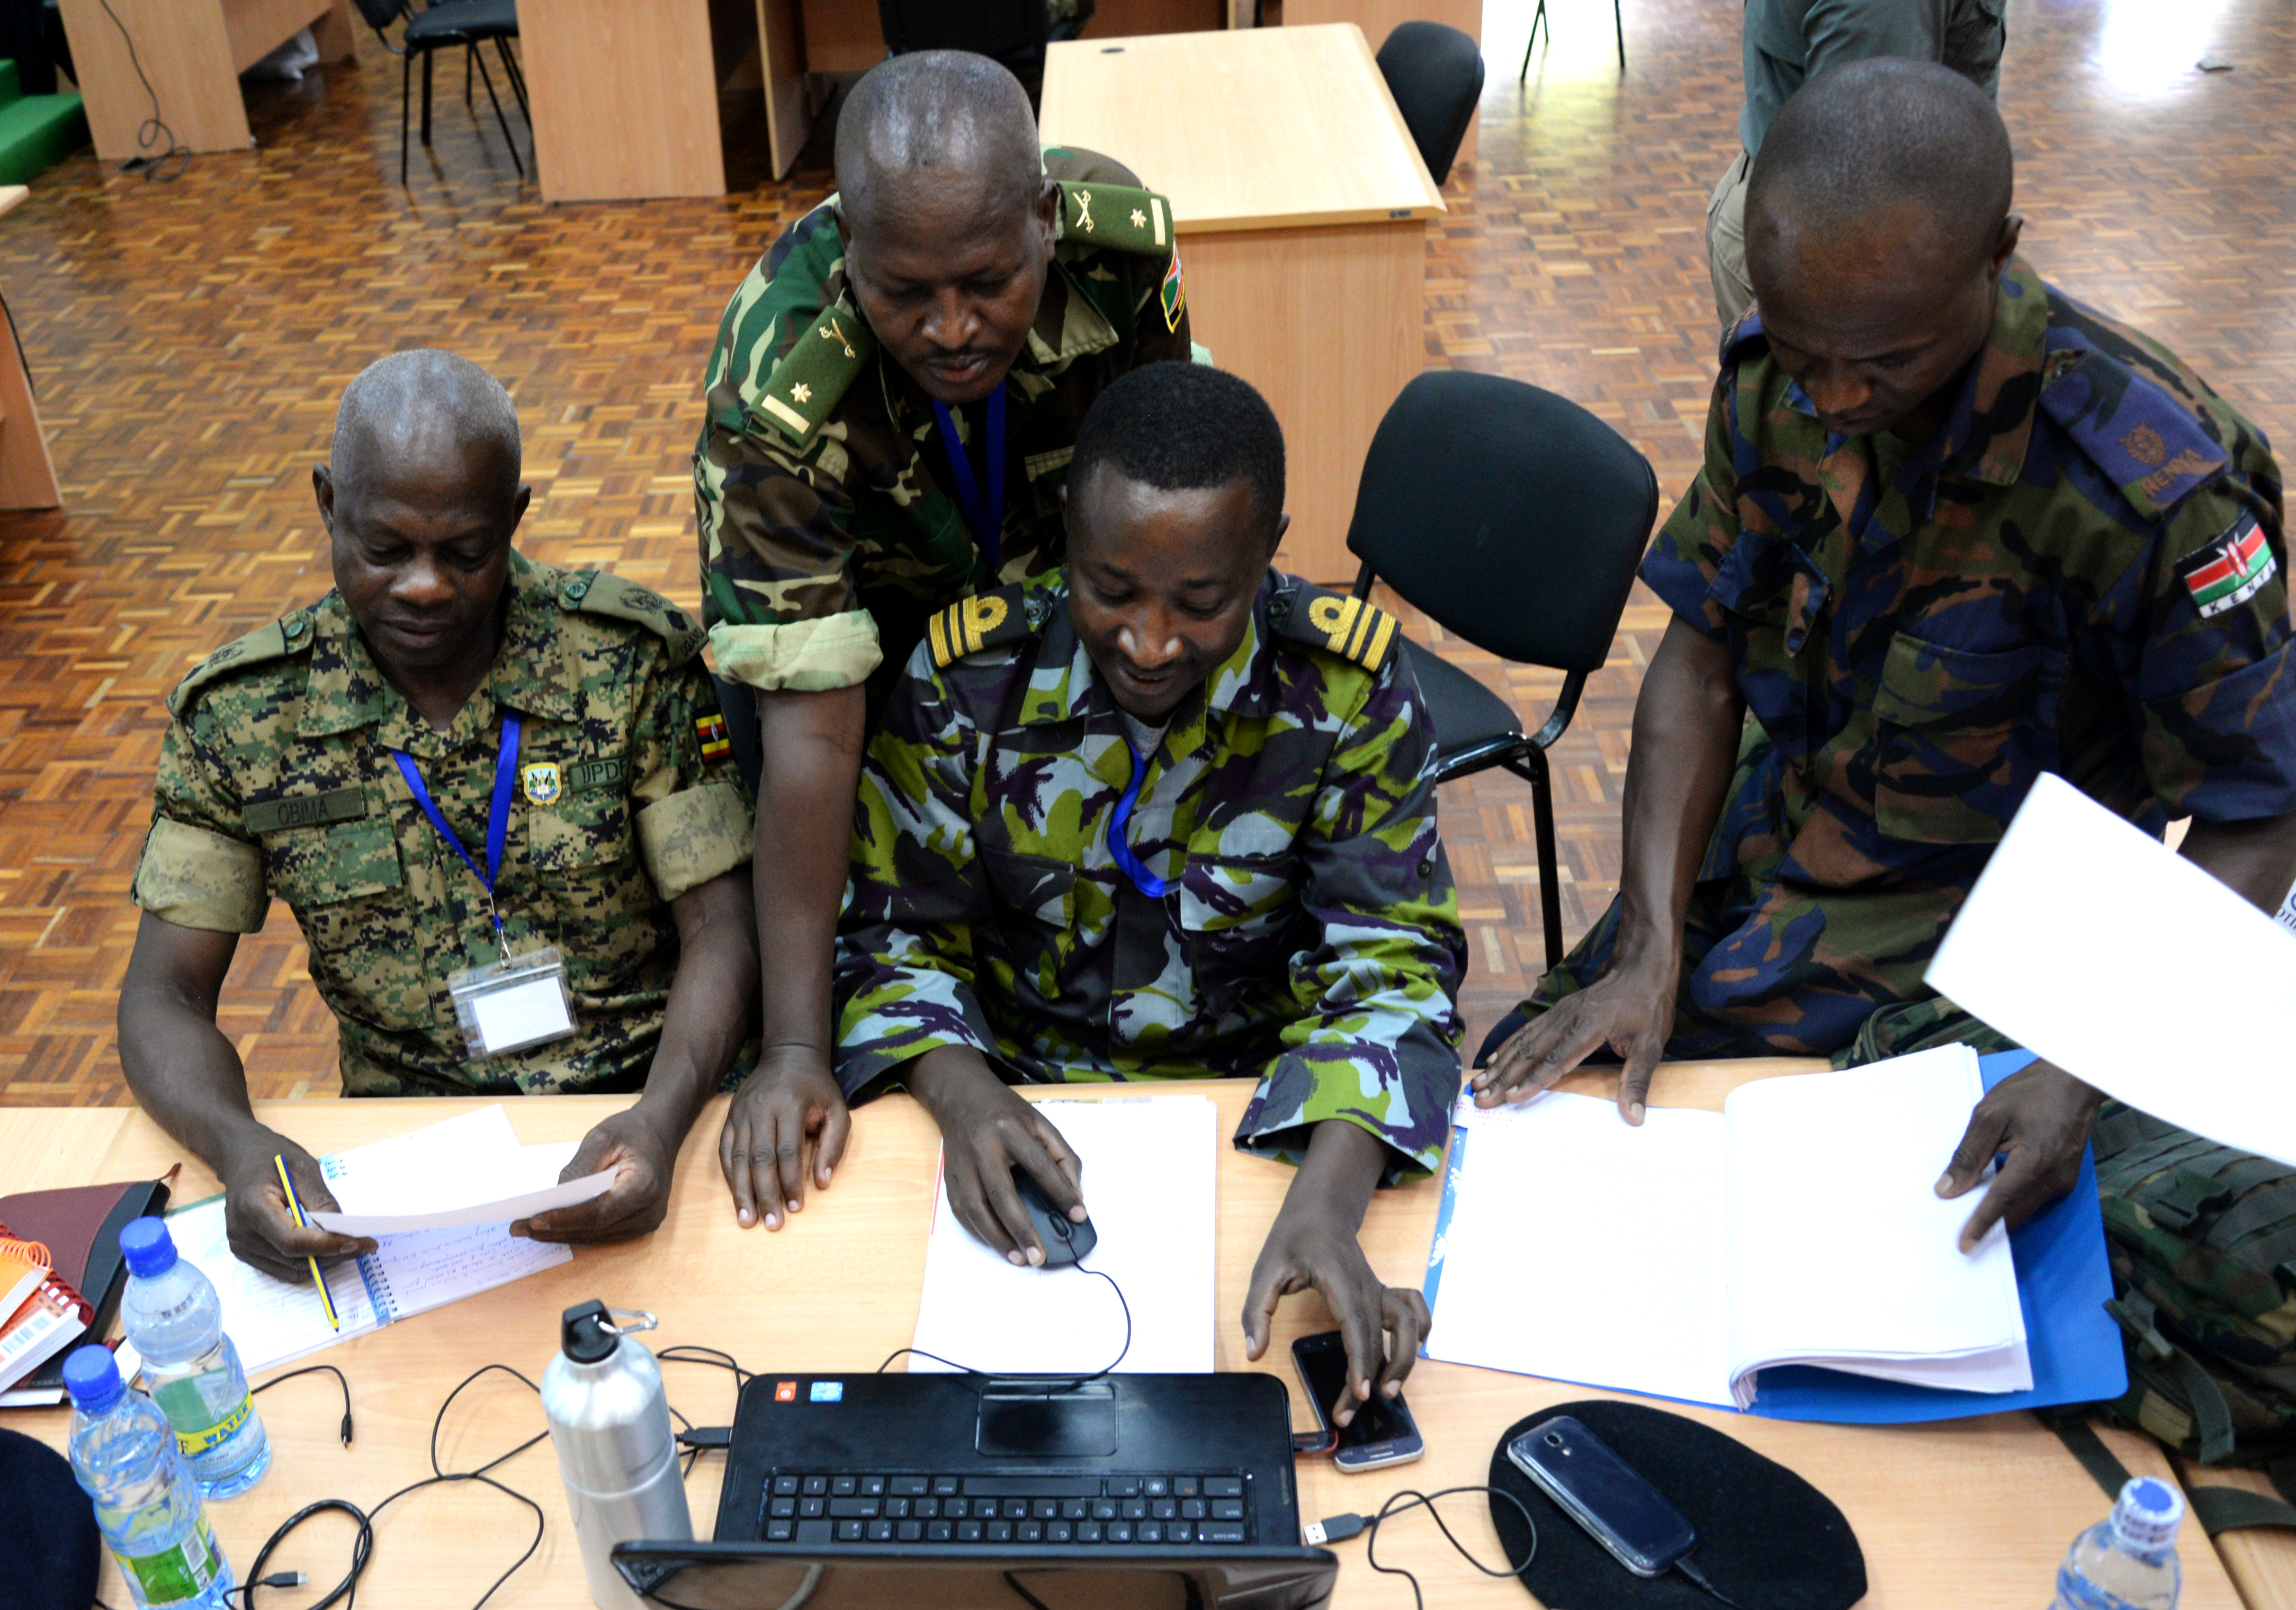 Officers from Kenya, Burundi and Uganda discuss military operations for a simulated scenario March 1, 2016, during an exercise to complete a staff officers course in Nairobi, Kenya. At the beginning of the course, the officers were split into six main directorates necessary for successful military operations: logistics and personnel, intelligence, public information, civil affairs, military operations, and command leadership. (U.S. Air Force photo by Staff Sgt. Kate Thornton)